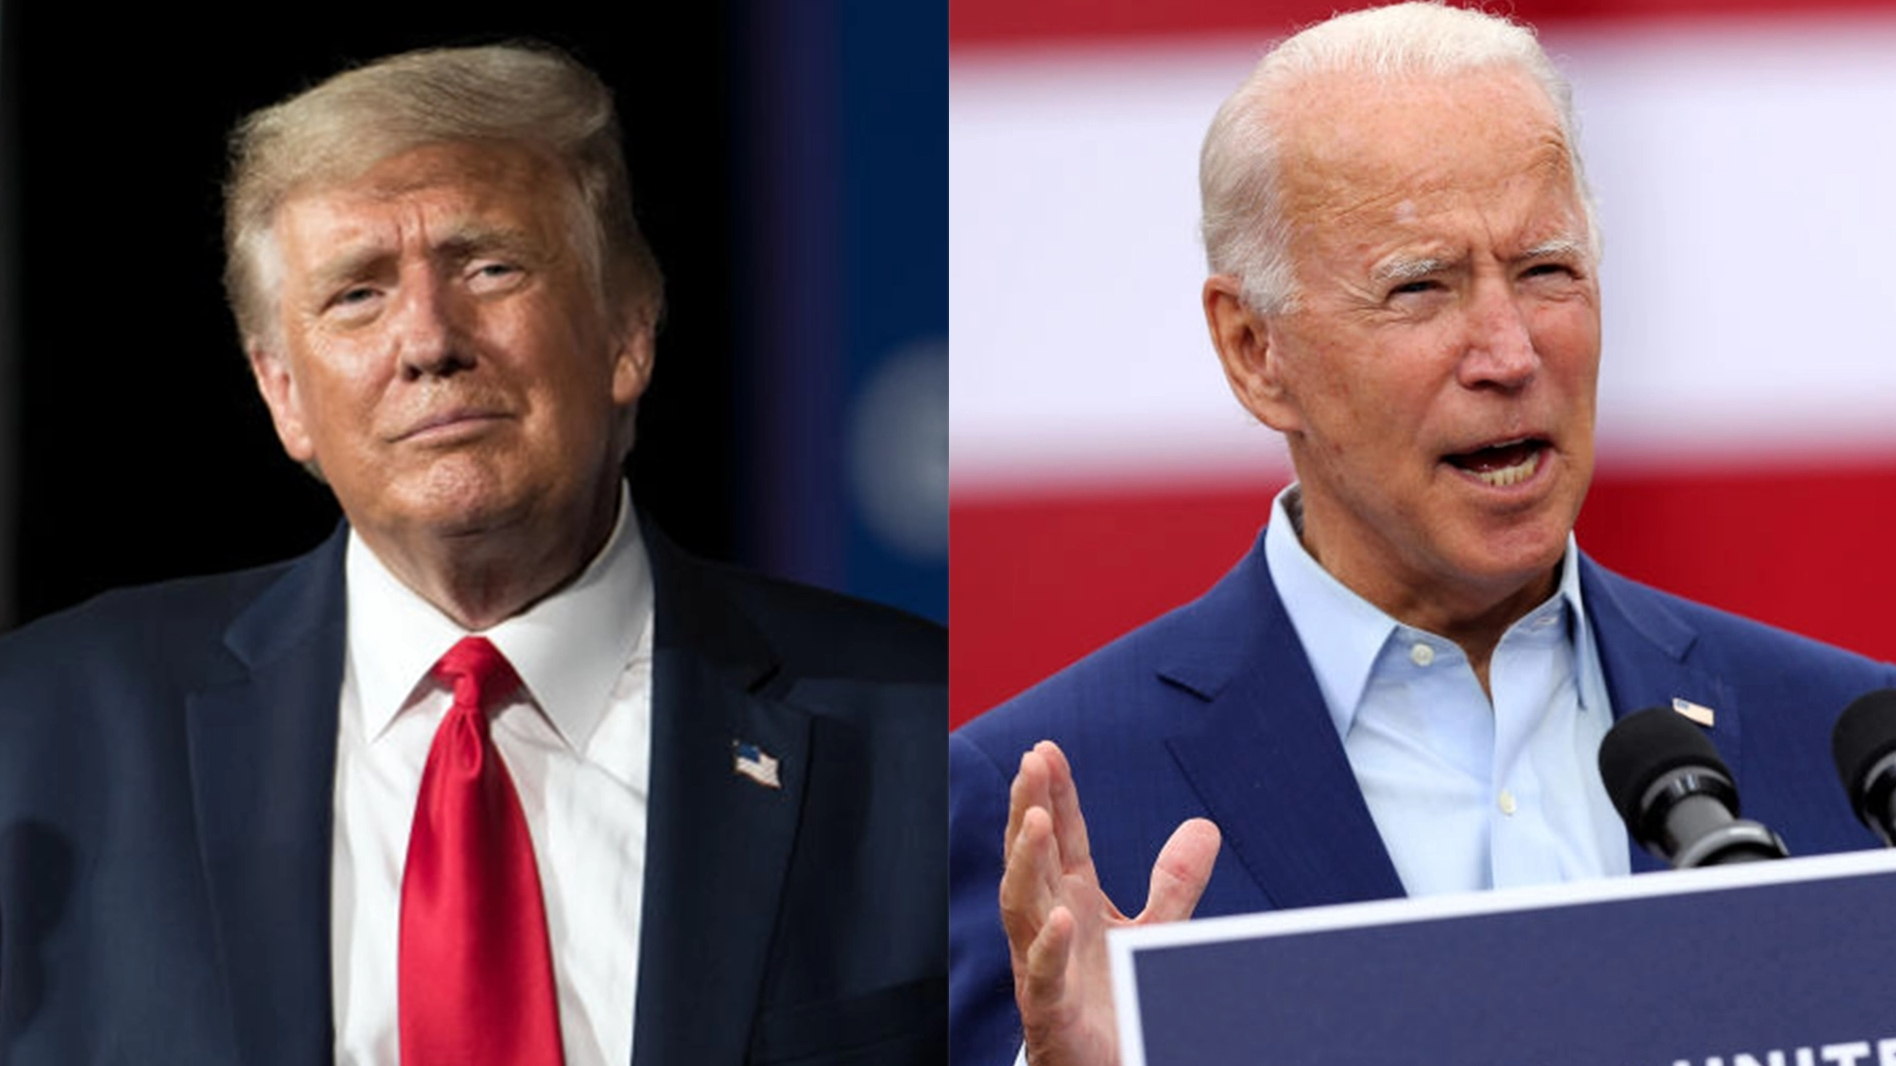 Trump – Biden's upcoming debate in dueling town hall meetings instead of face-to-face